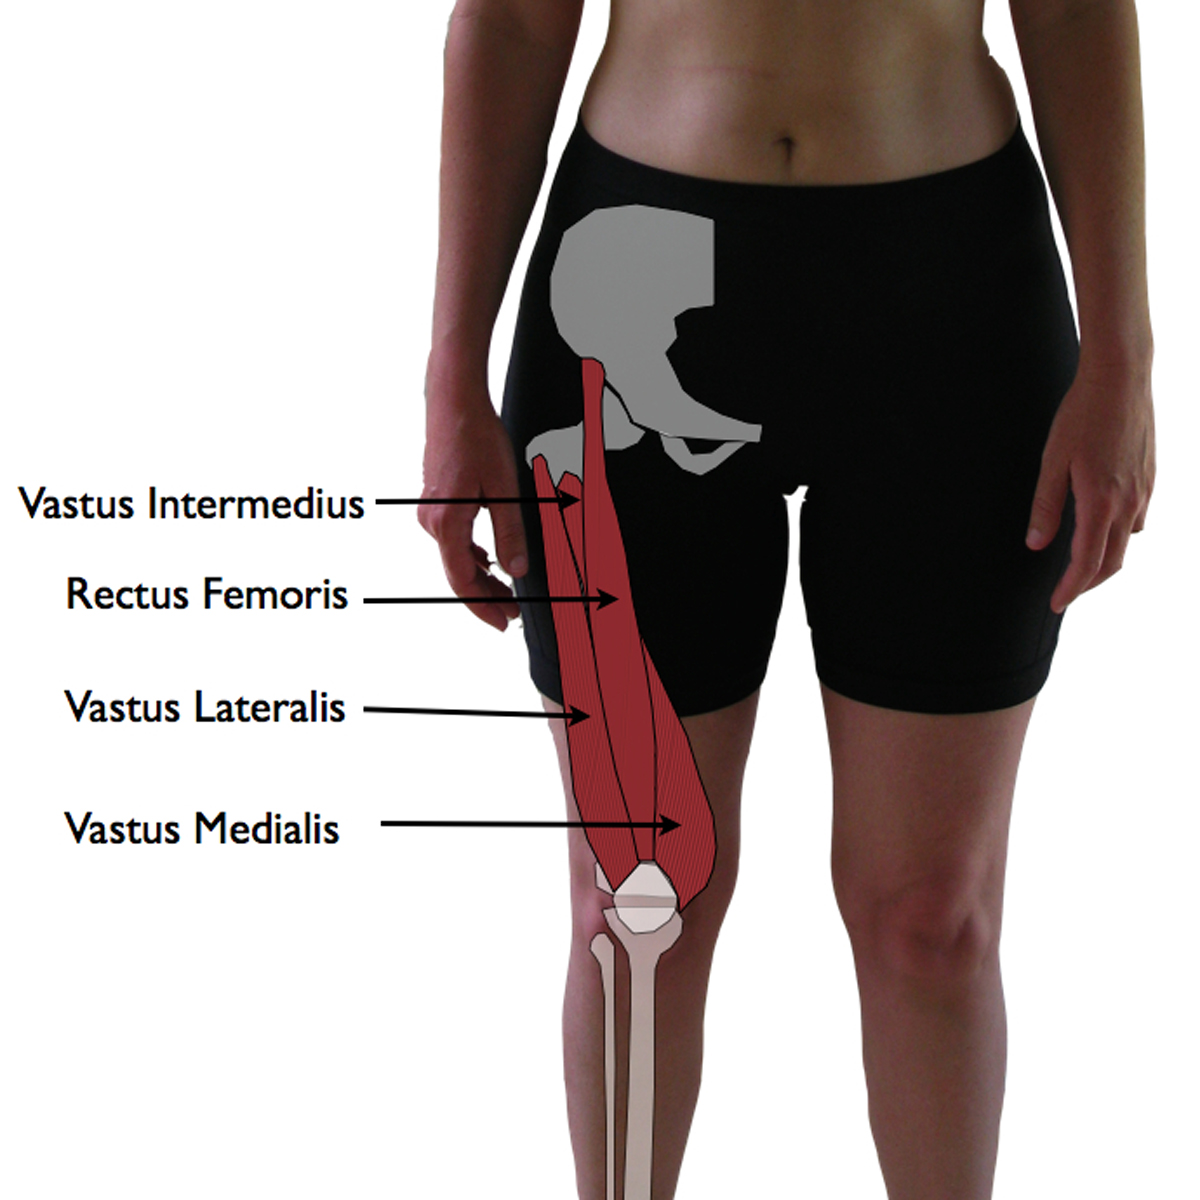 Vastus Lateralis Trigger Points The Knee Pain Trigger Points Part